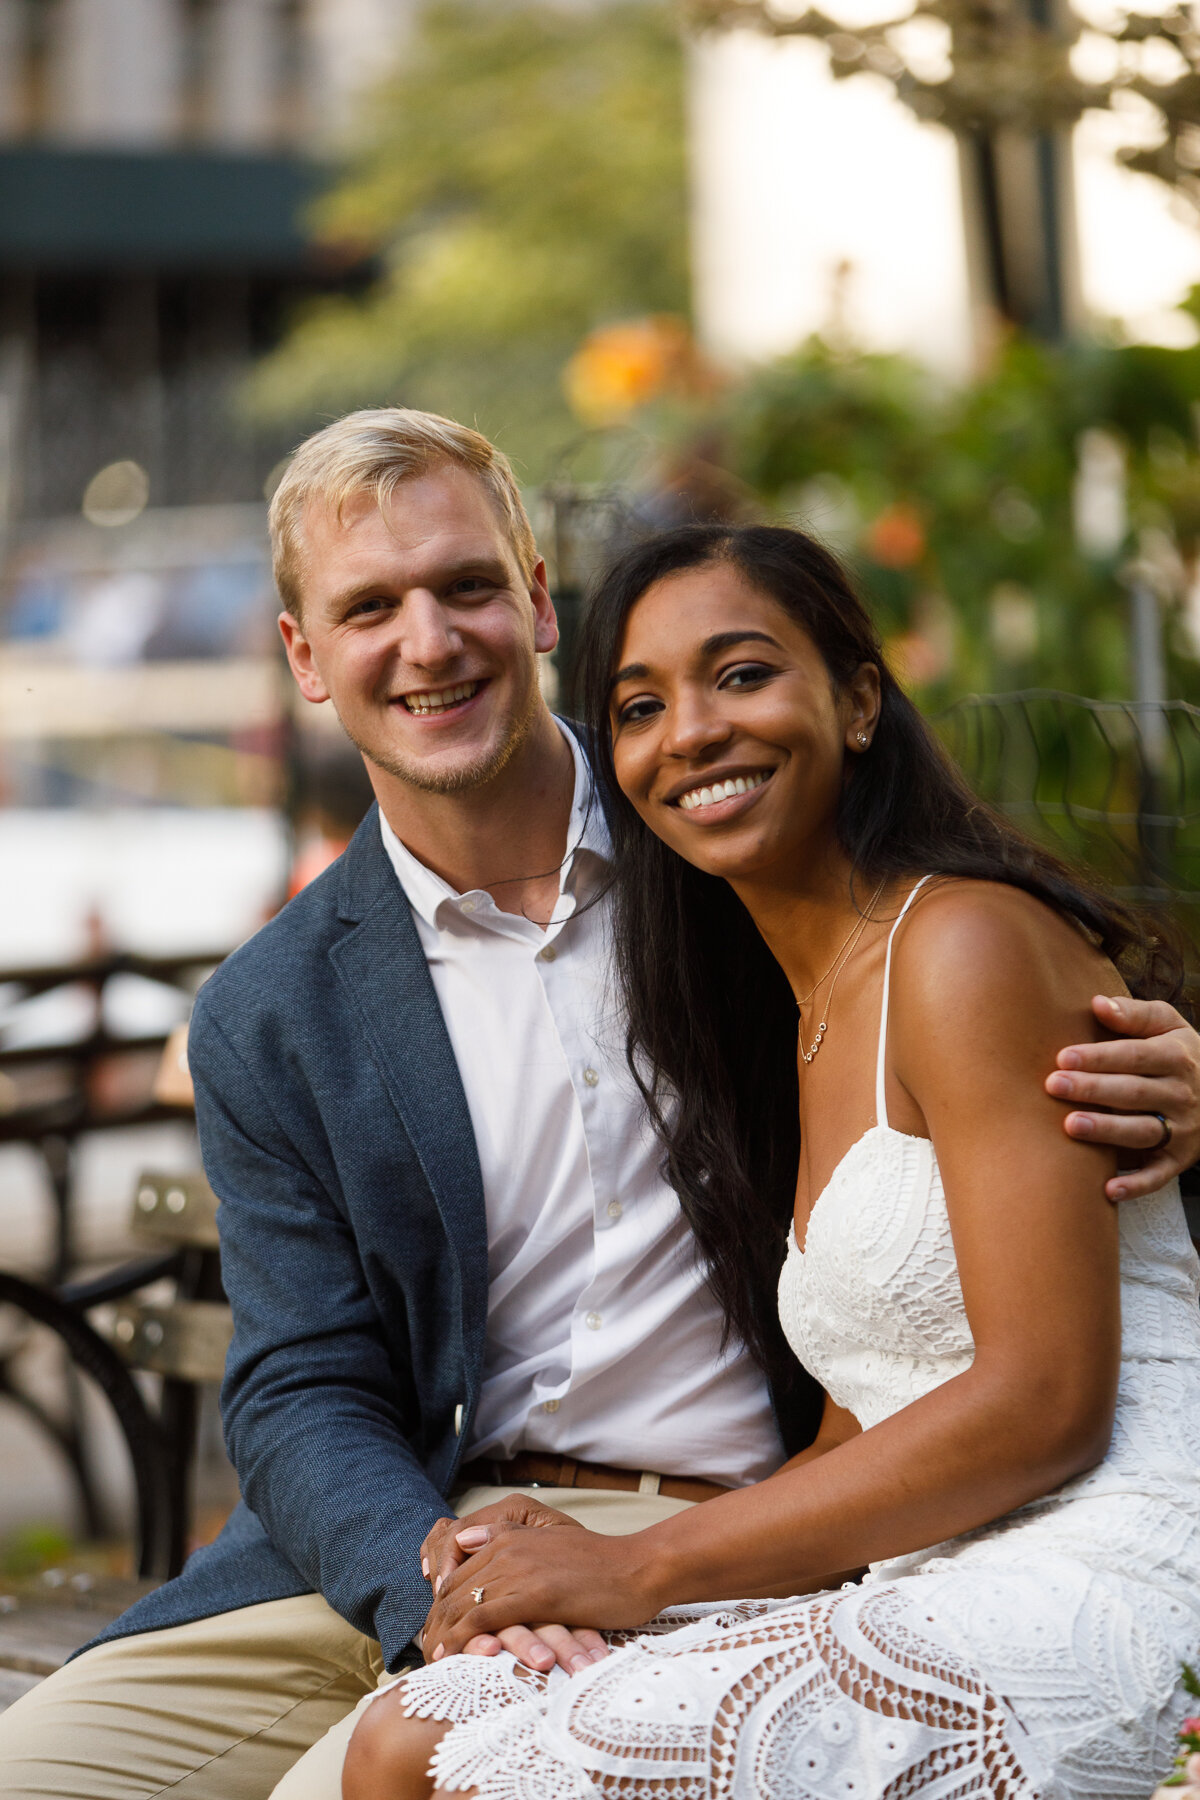 NYC Manhattan City Hall Wedding _ Jonathan Heisler _ 10042019 _0047.jpg